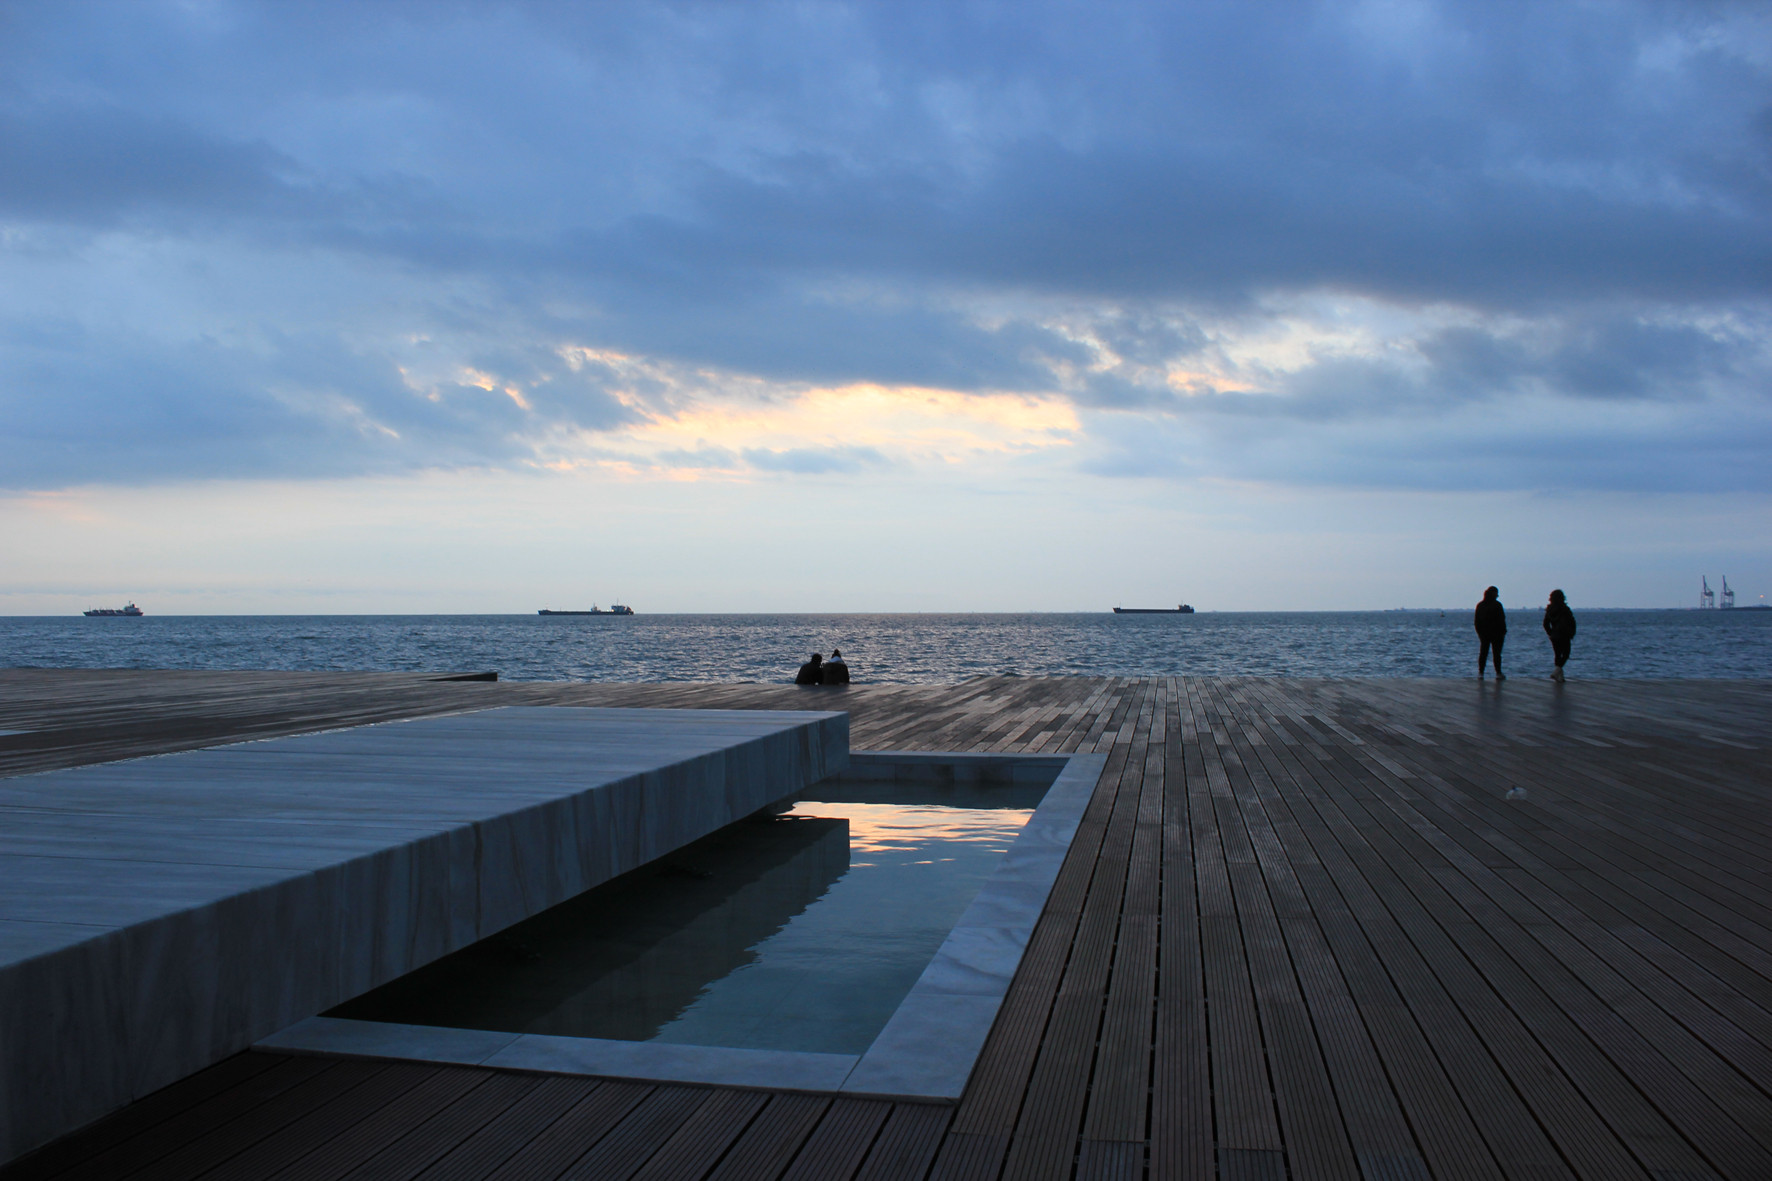 Redevelopment Of The New Waterfront In Thessaloniki. Image © Prodromos Nikiforidis